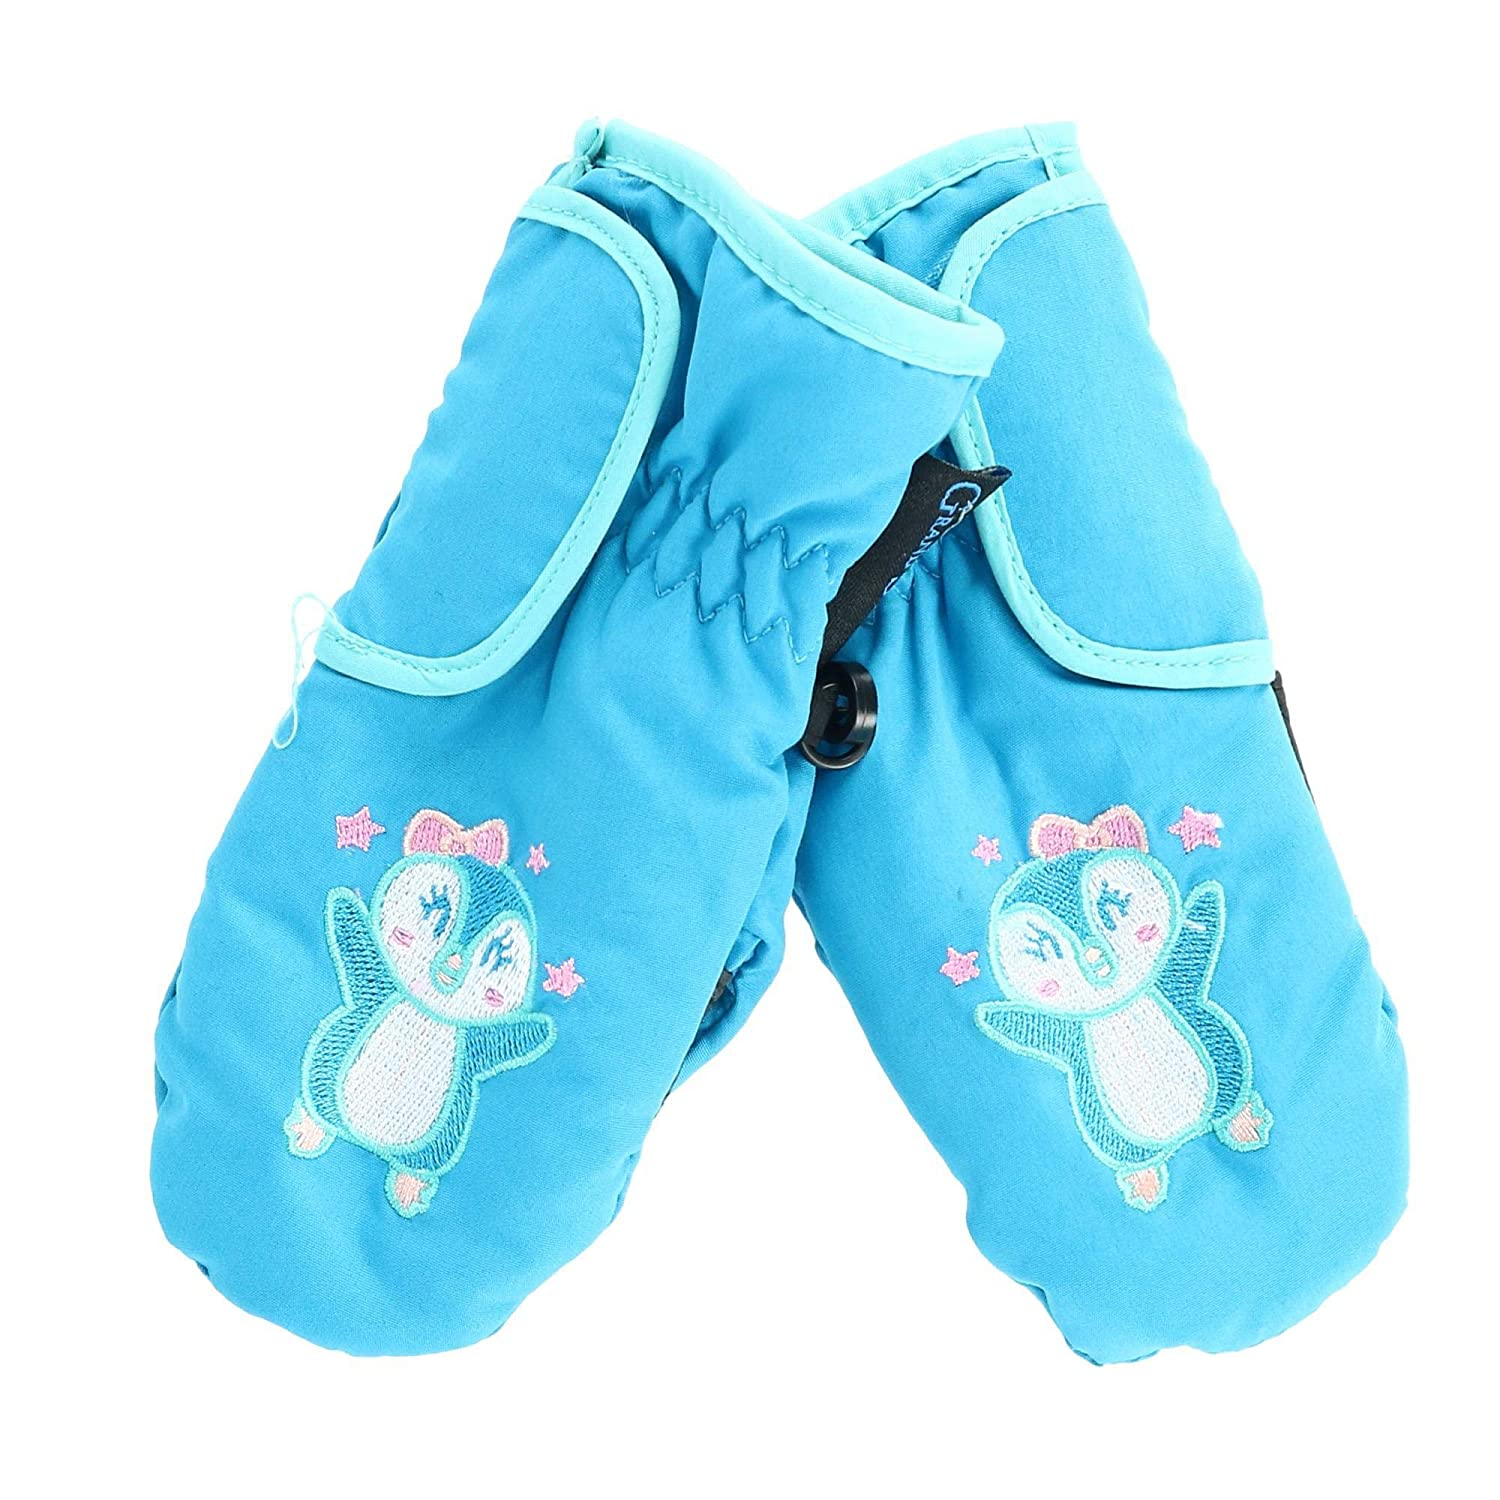 Grand Sierra Toddlers Girls' 2-4 Embroidered Waterproof Mittens, Bunny